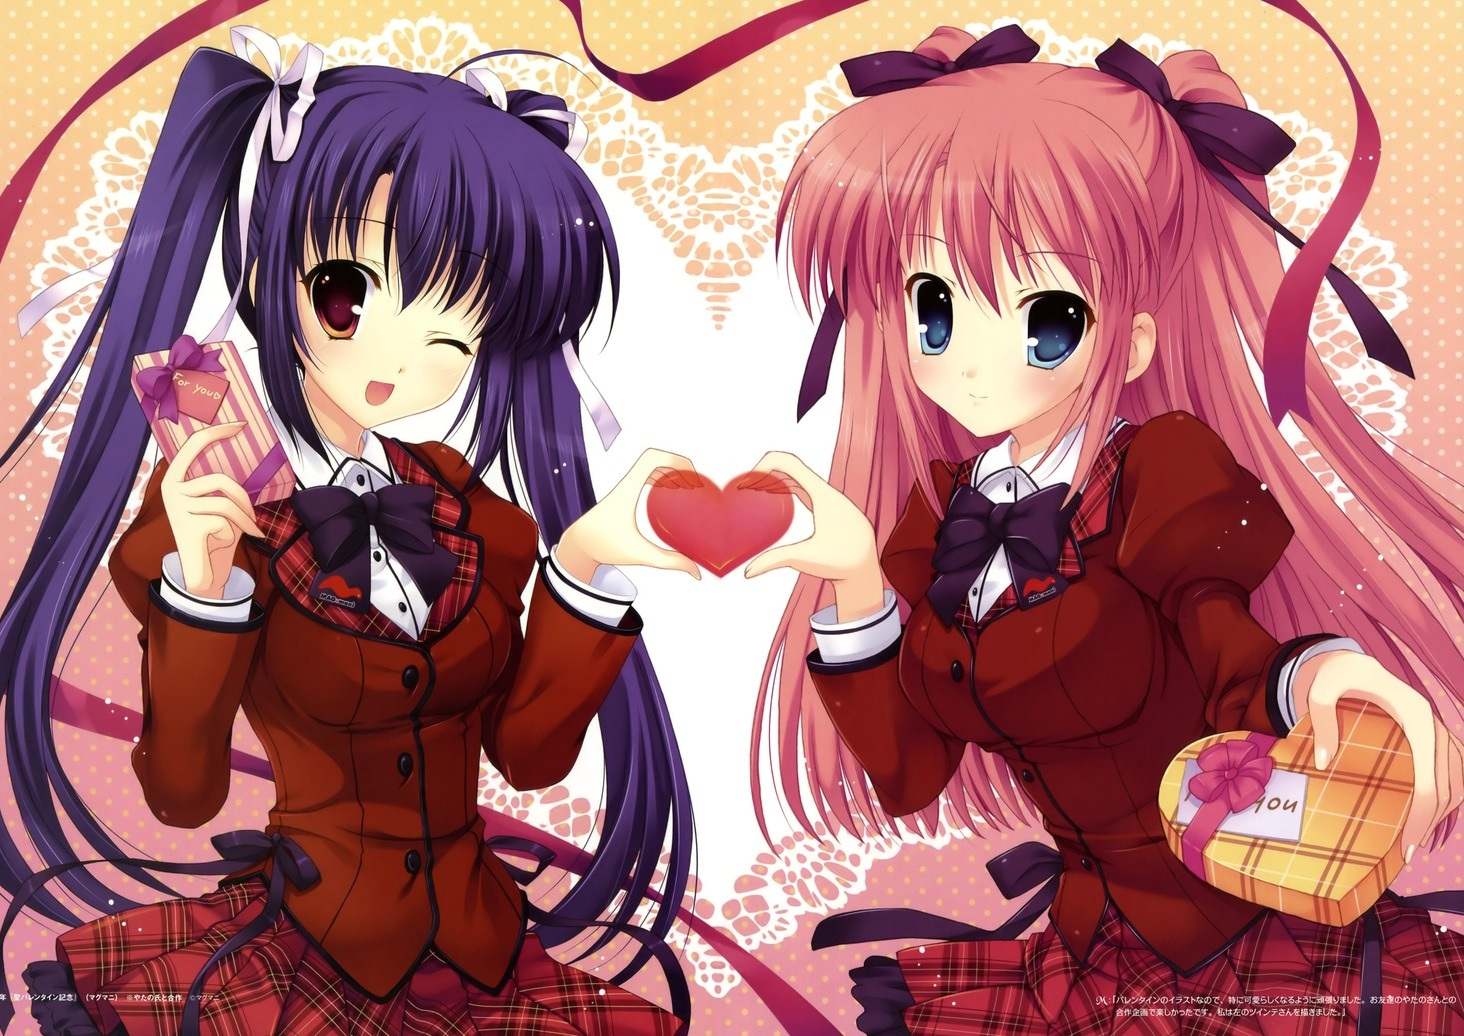 In This Anime Wallpaper Two Cute Anime Girls Are Making A Valentines 1464x1036